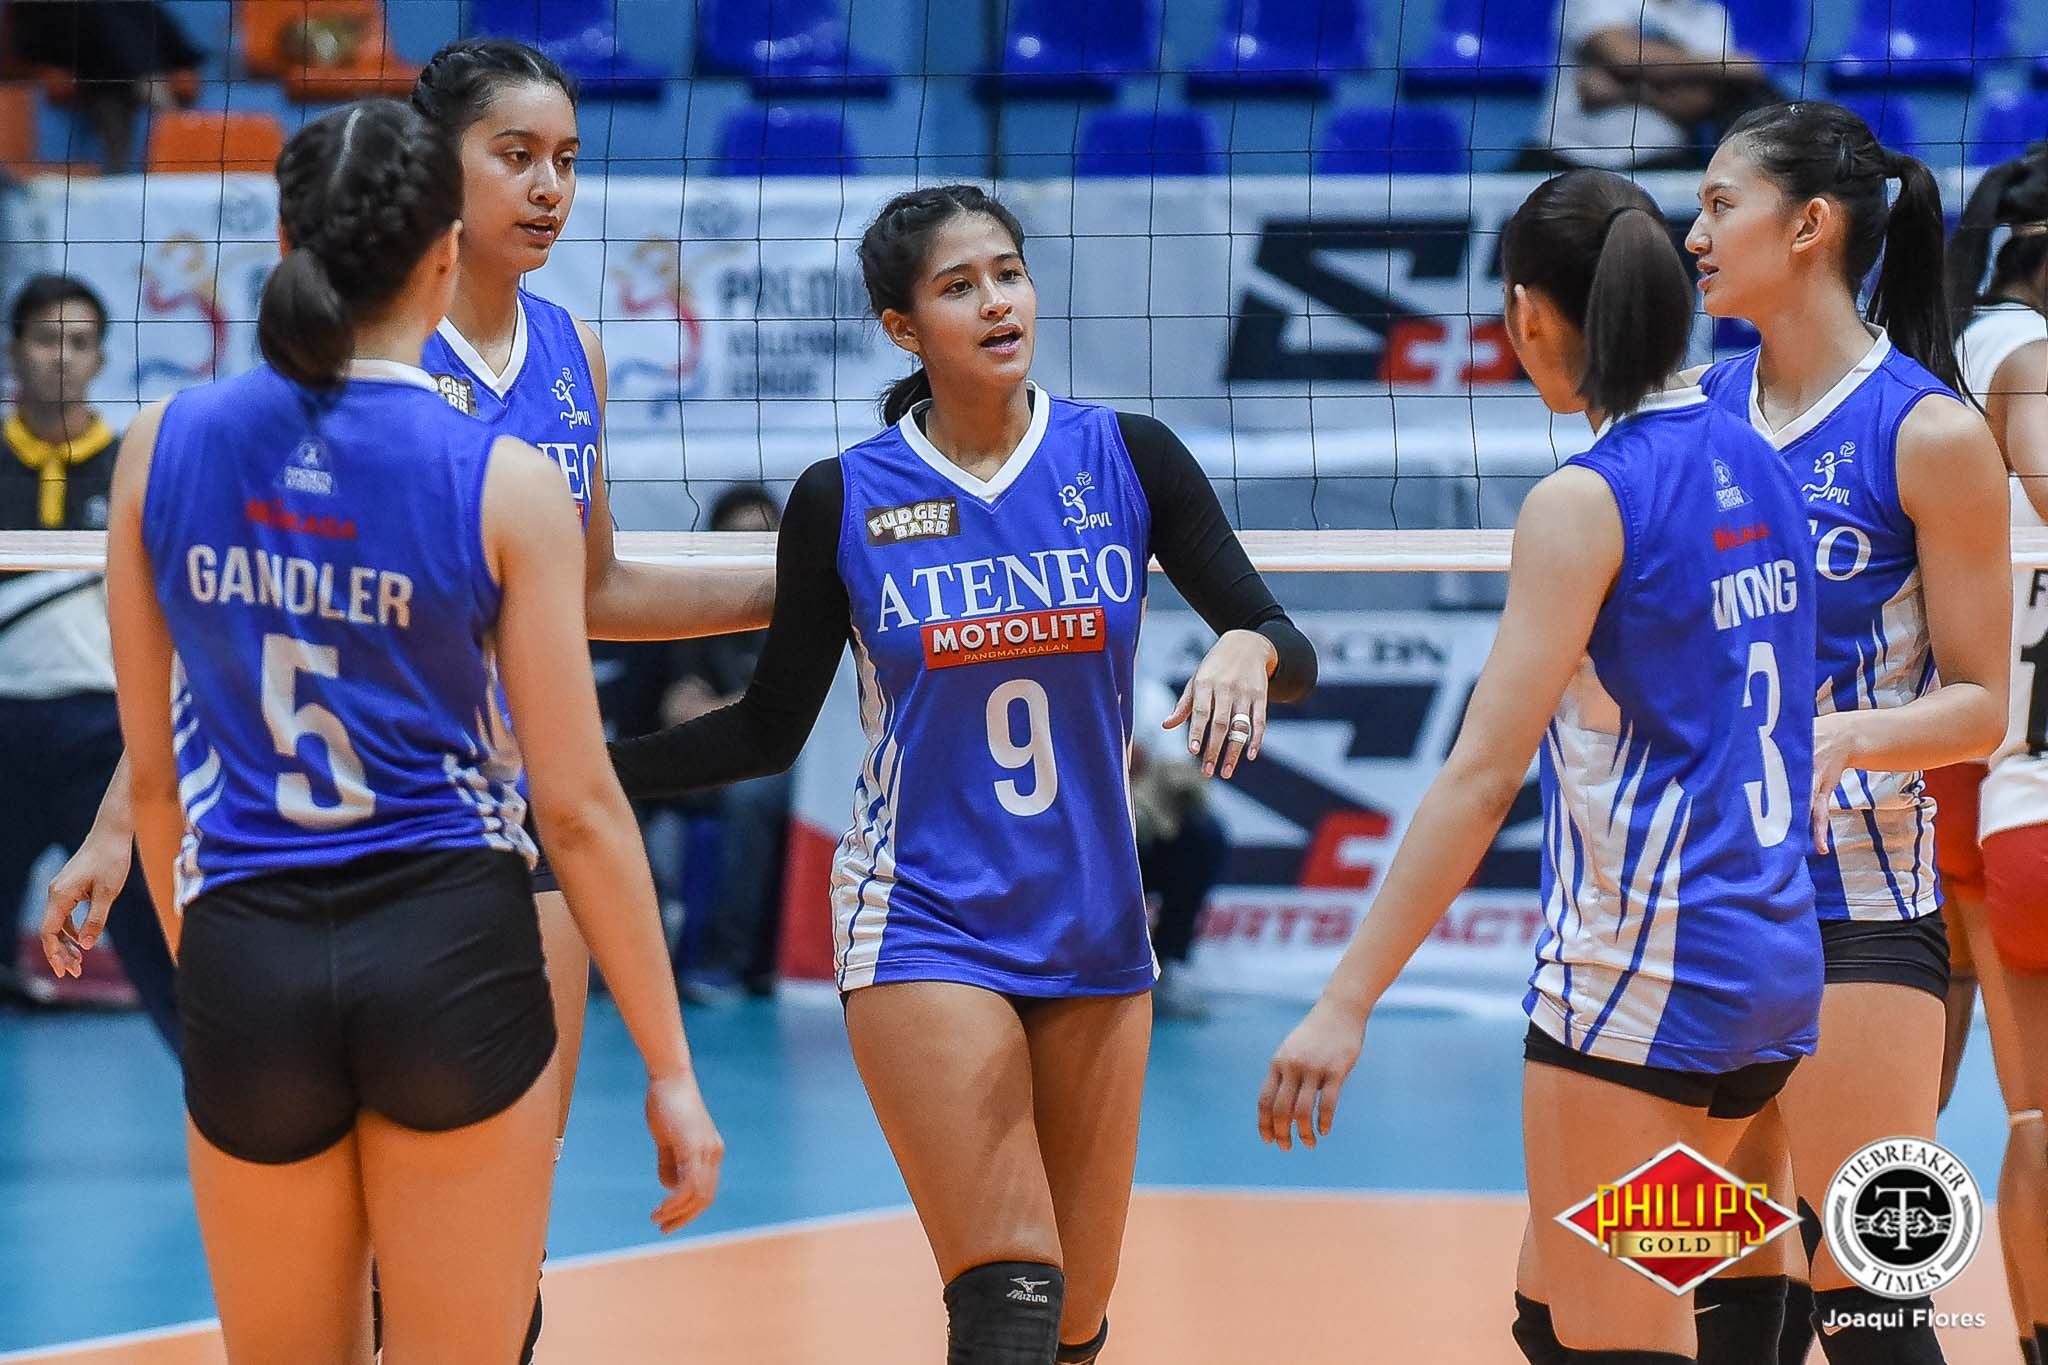 Tiebreaker Times Lady Eagles get ready to face Ateneo legends ADMU News PVL Volleyball  Oliver Almadro Maddie Madayag Bea De Leon Ateneo-Motolite Lady Eagles 2018 PVL Season 2018 PVL Open Conference